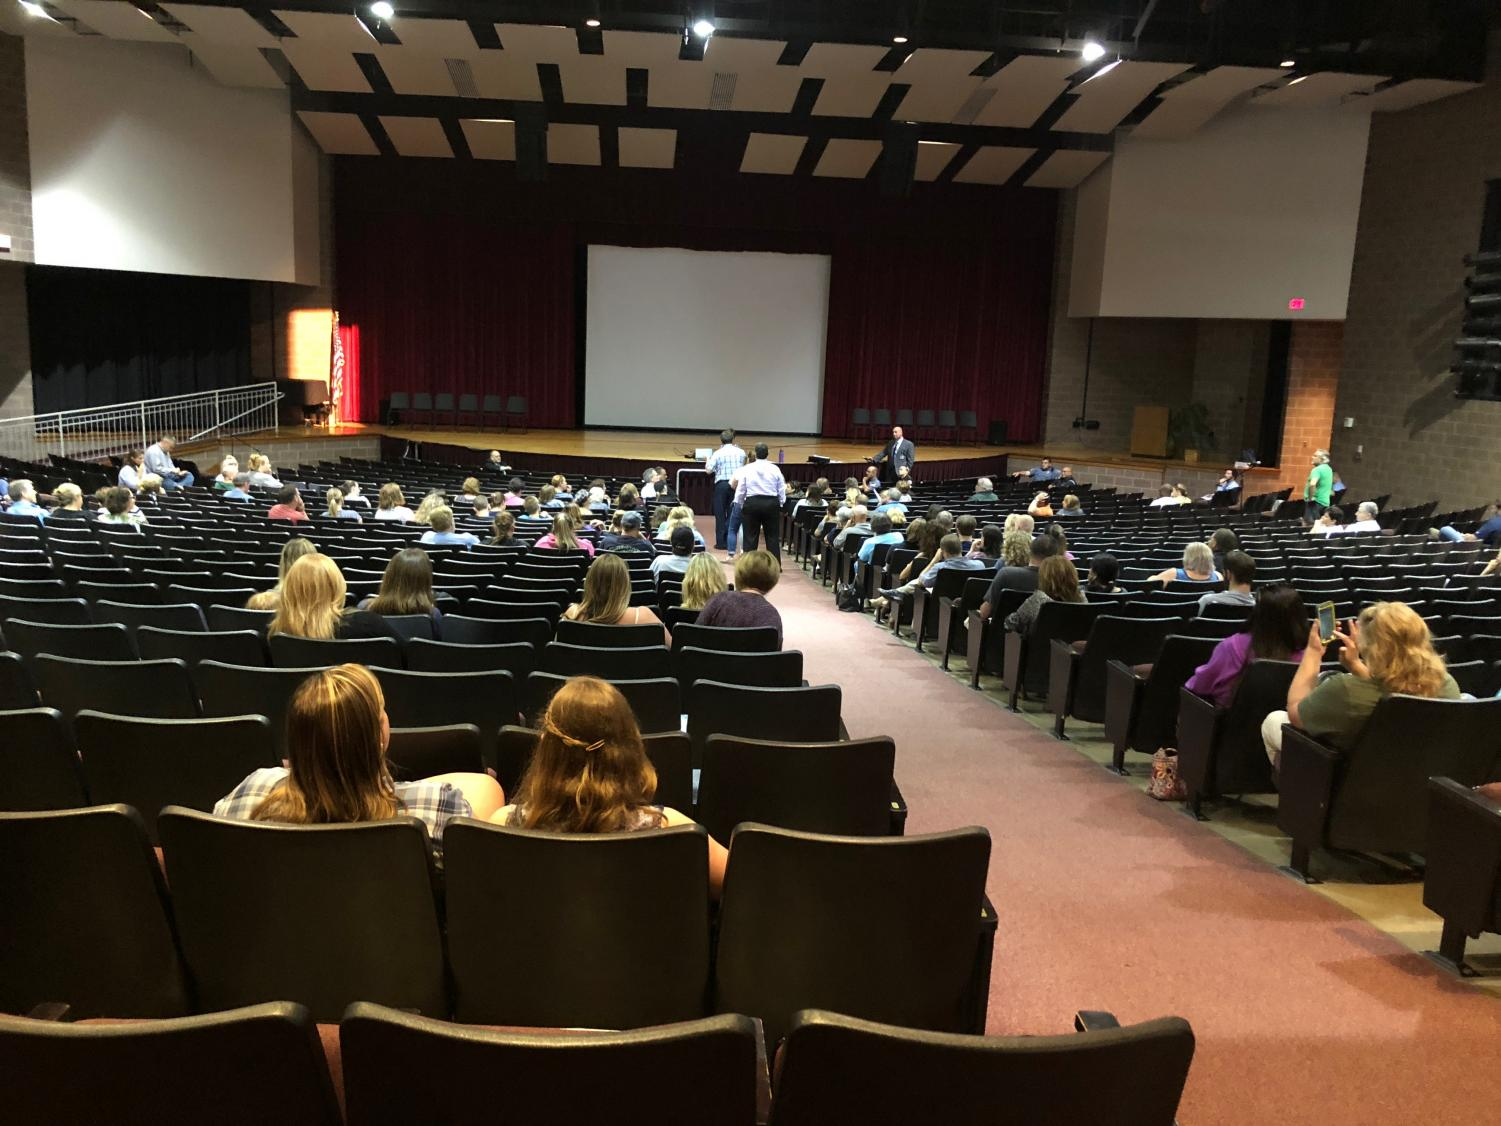 A Town Hall meeting was held at the high school Thursday evening to address recent rumors and safety concerns.